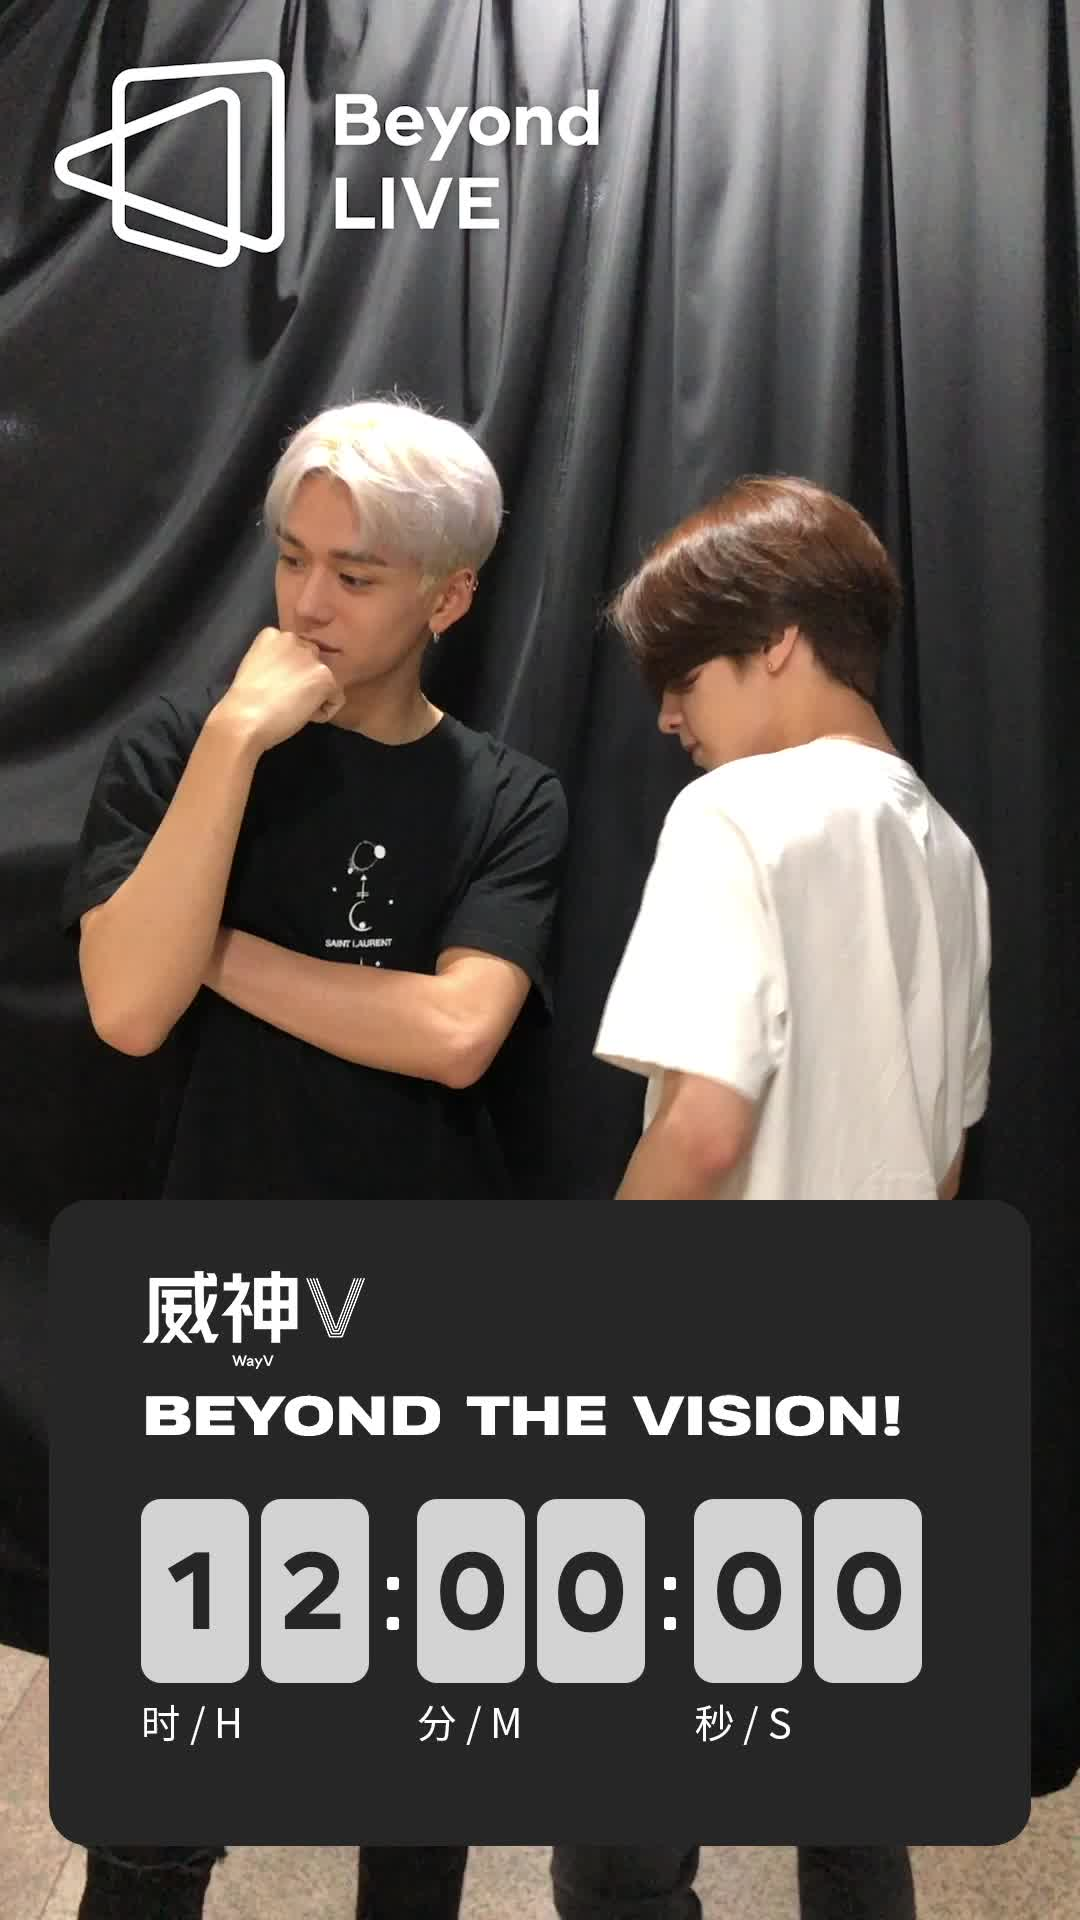 WayV - Beyond the Vision D-DAY🔥THE COUNTDOWN BEGINS : 12 hours to go⏰